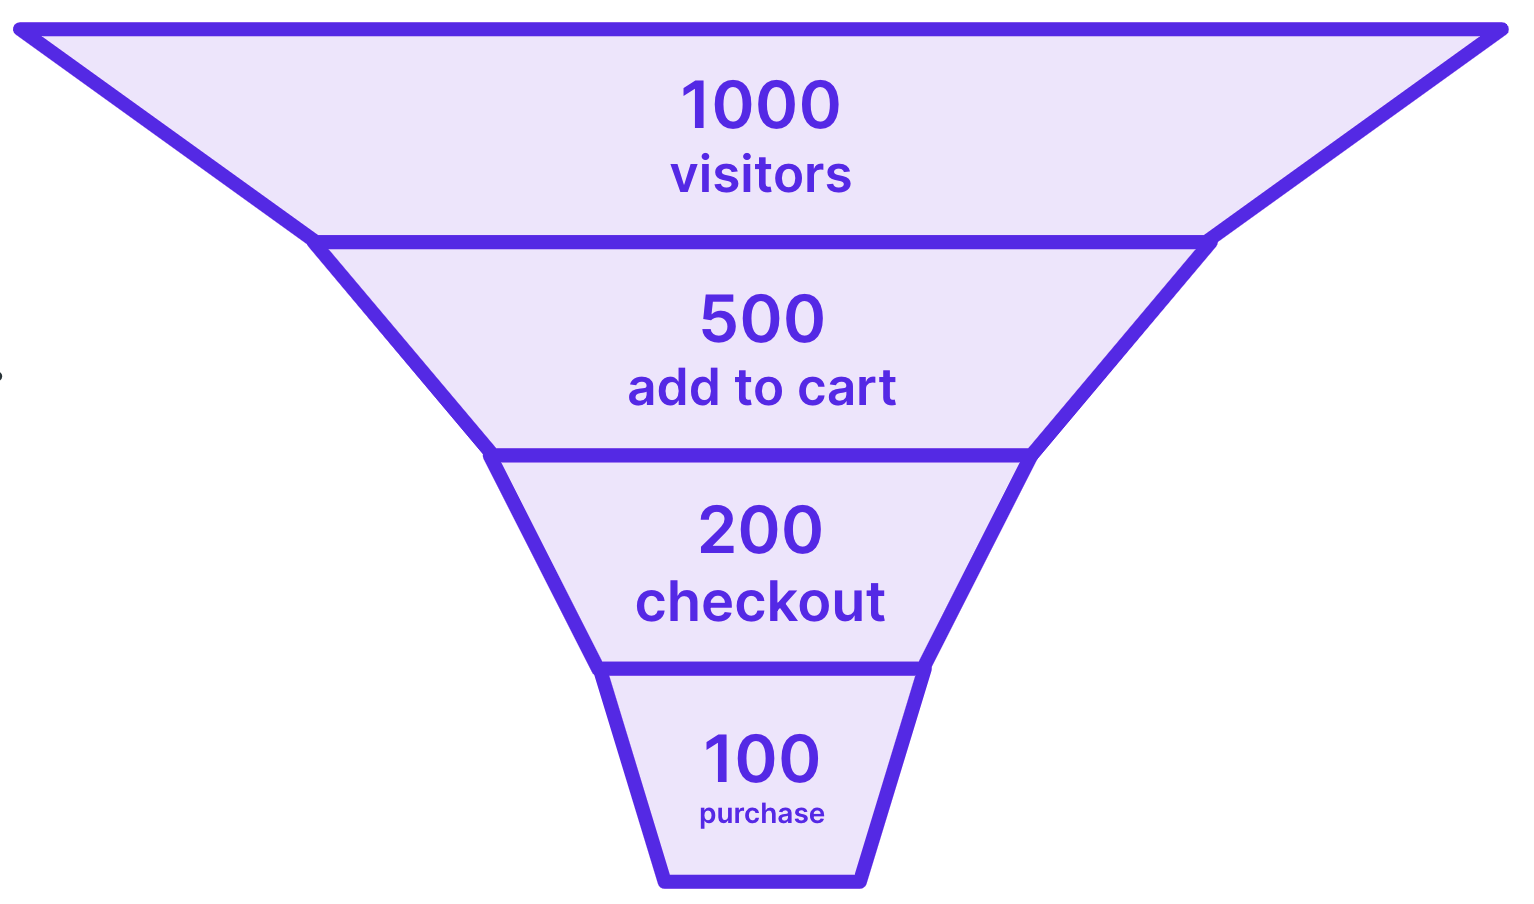 Funnel for a typical ecommerce site